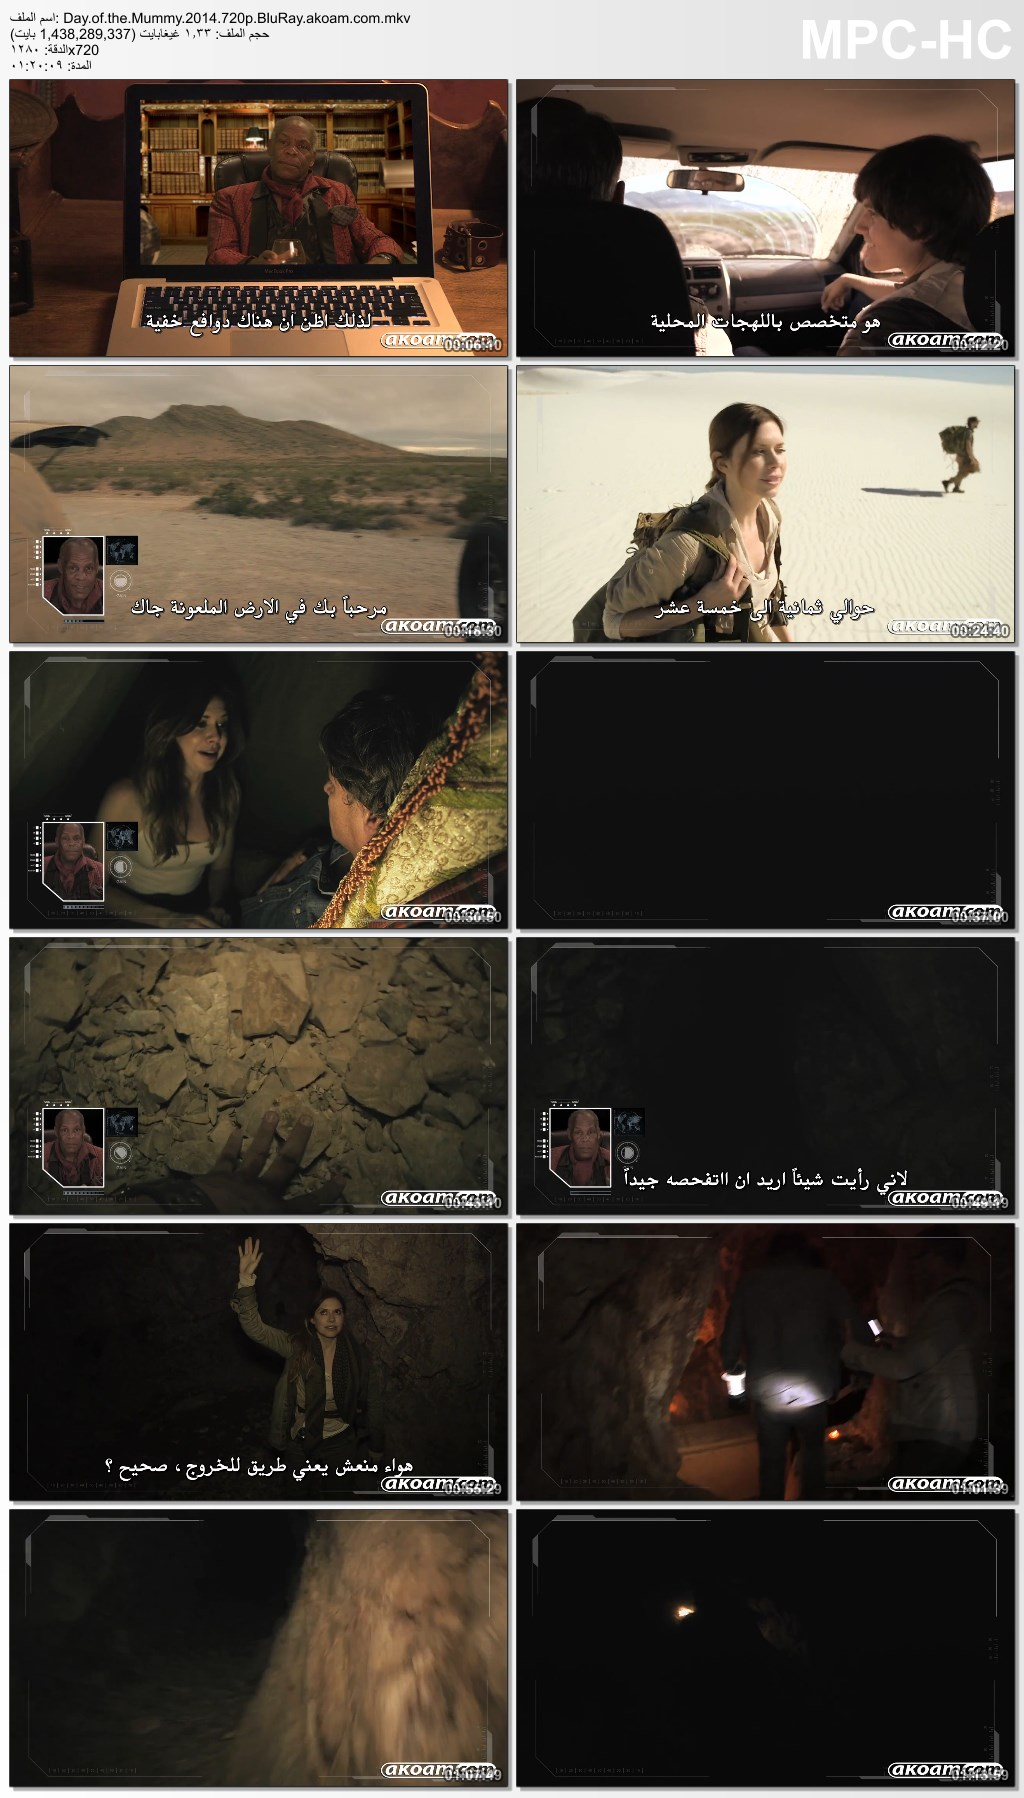 Day of the Mummy,البلوراي,Day of the Mummy 2014,الرعب,مصر